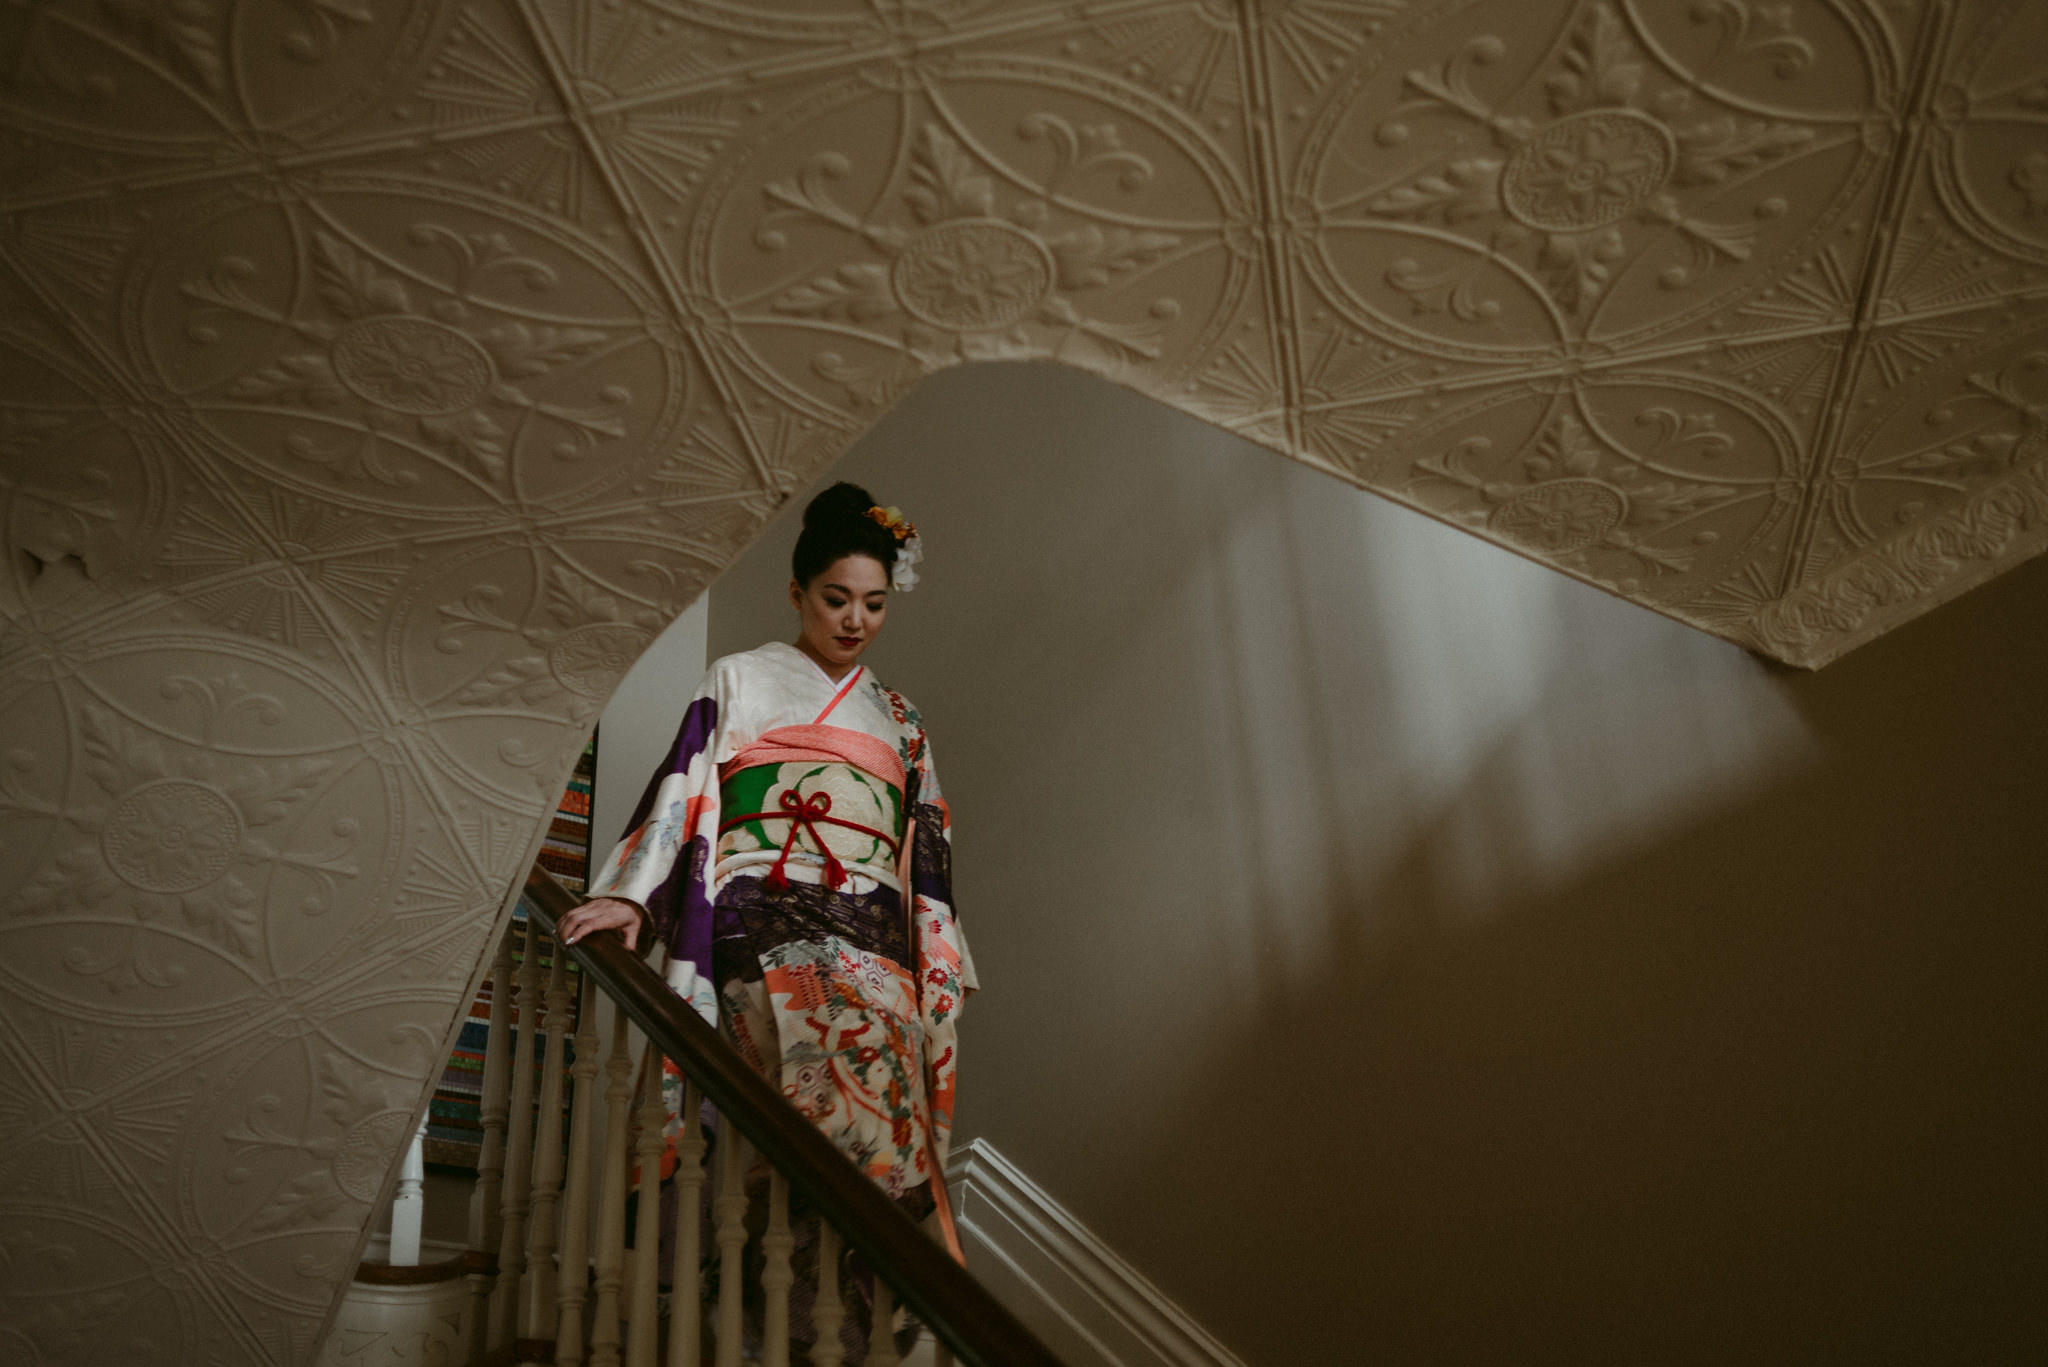 Japanese women in kimono walking down stairs